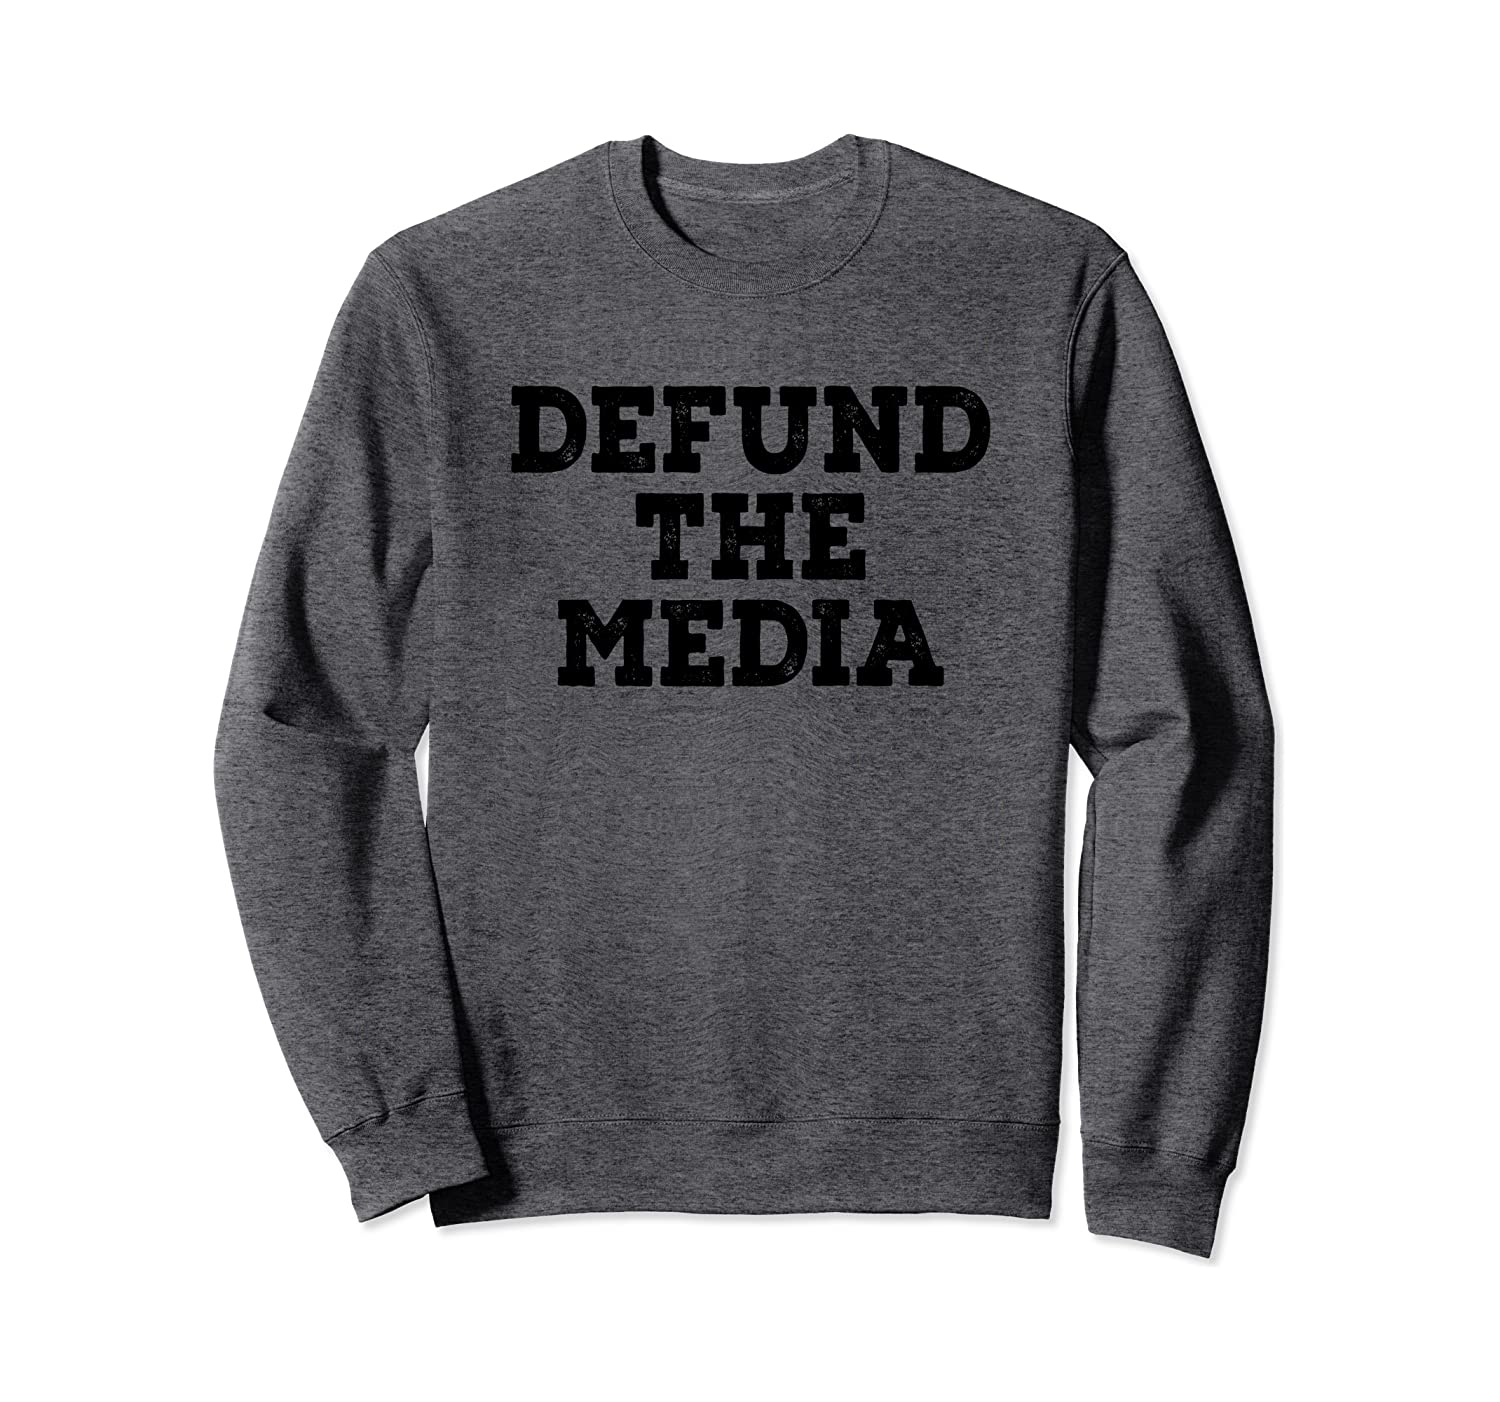 Defund The Media Fake News Political Protest Social Distance Sweatshirt